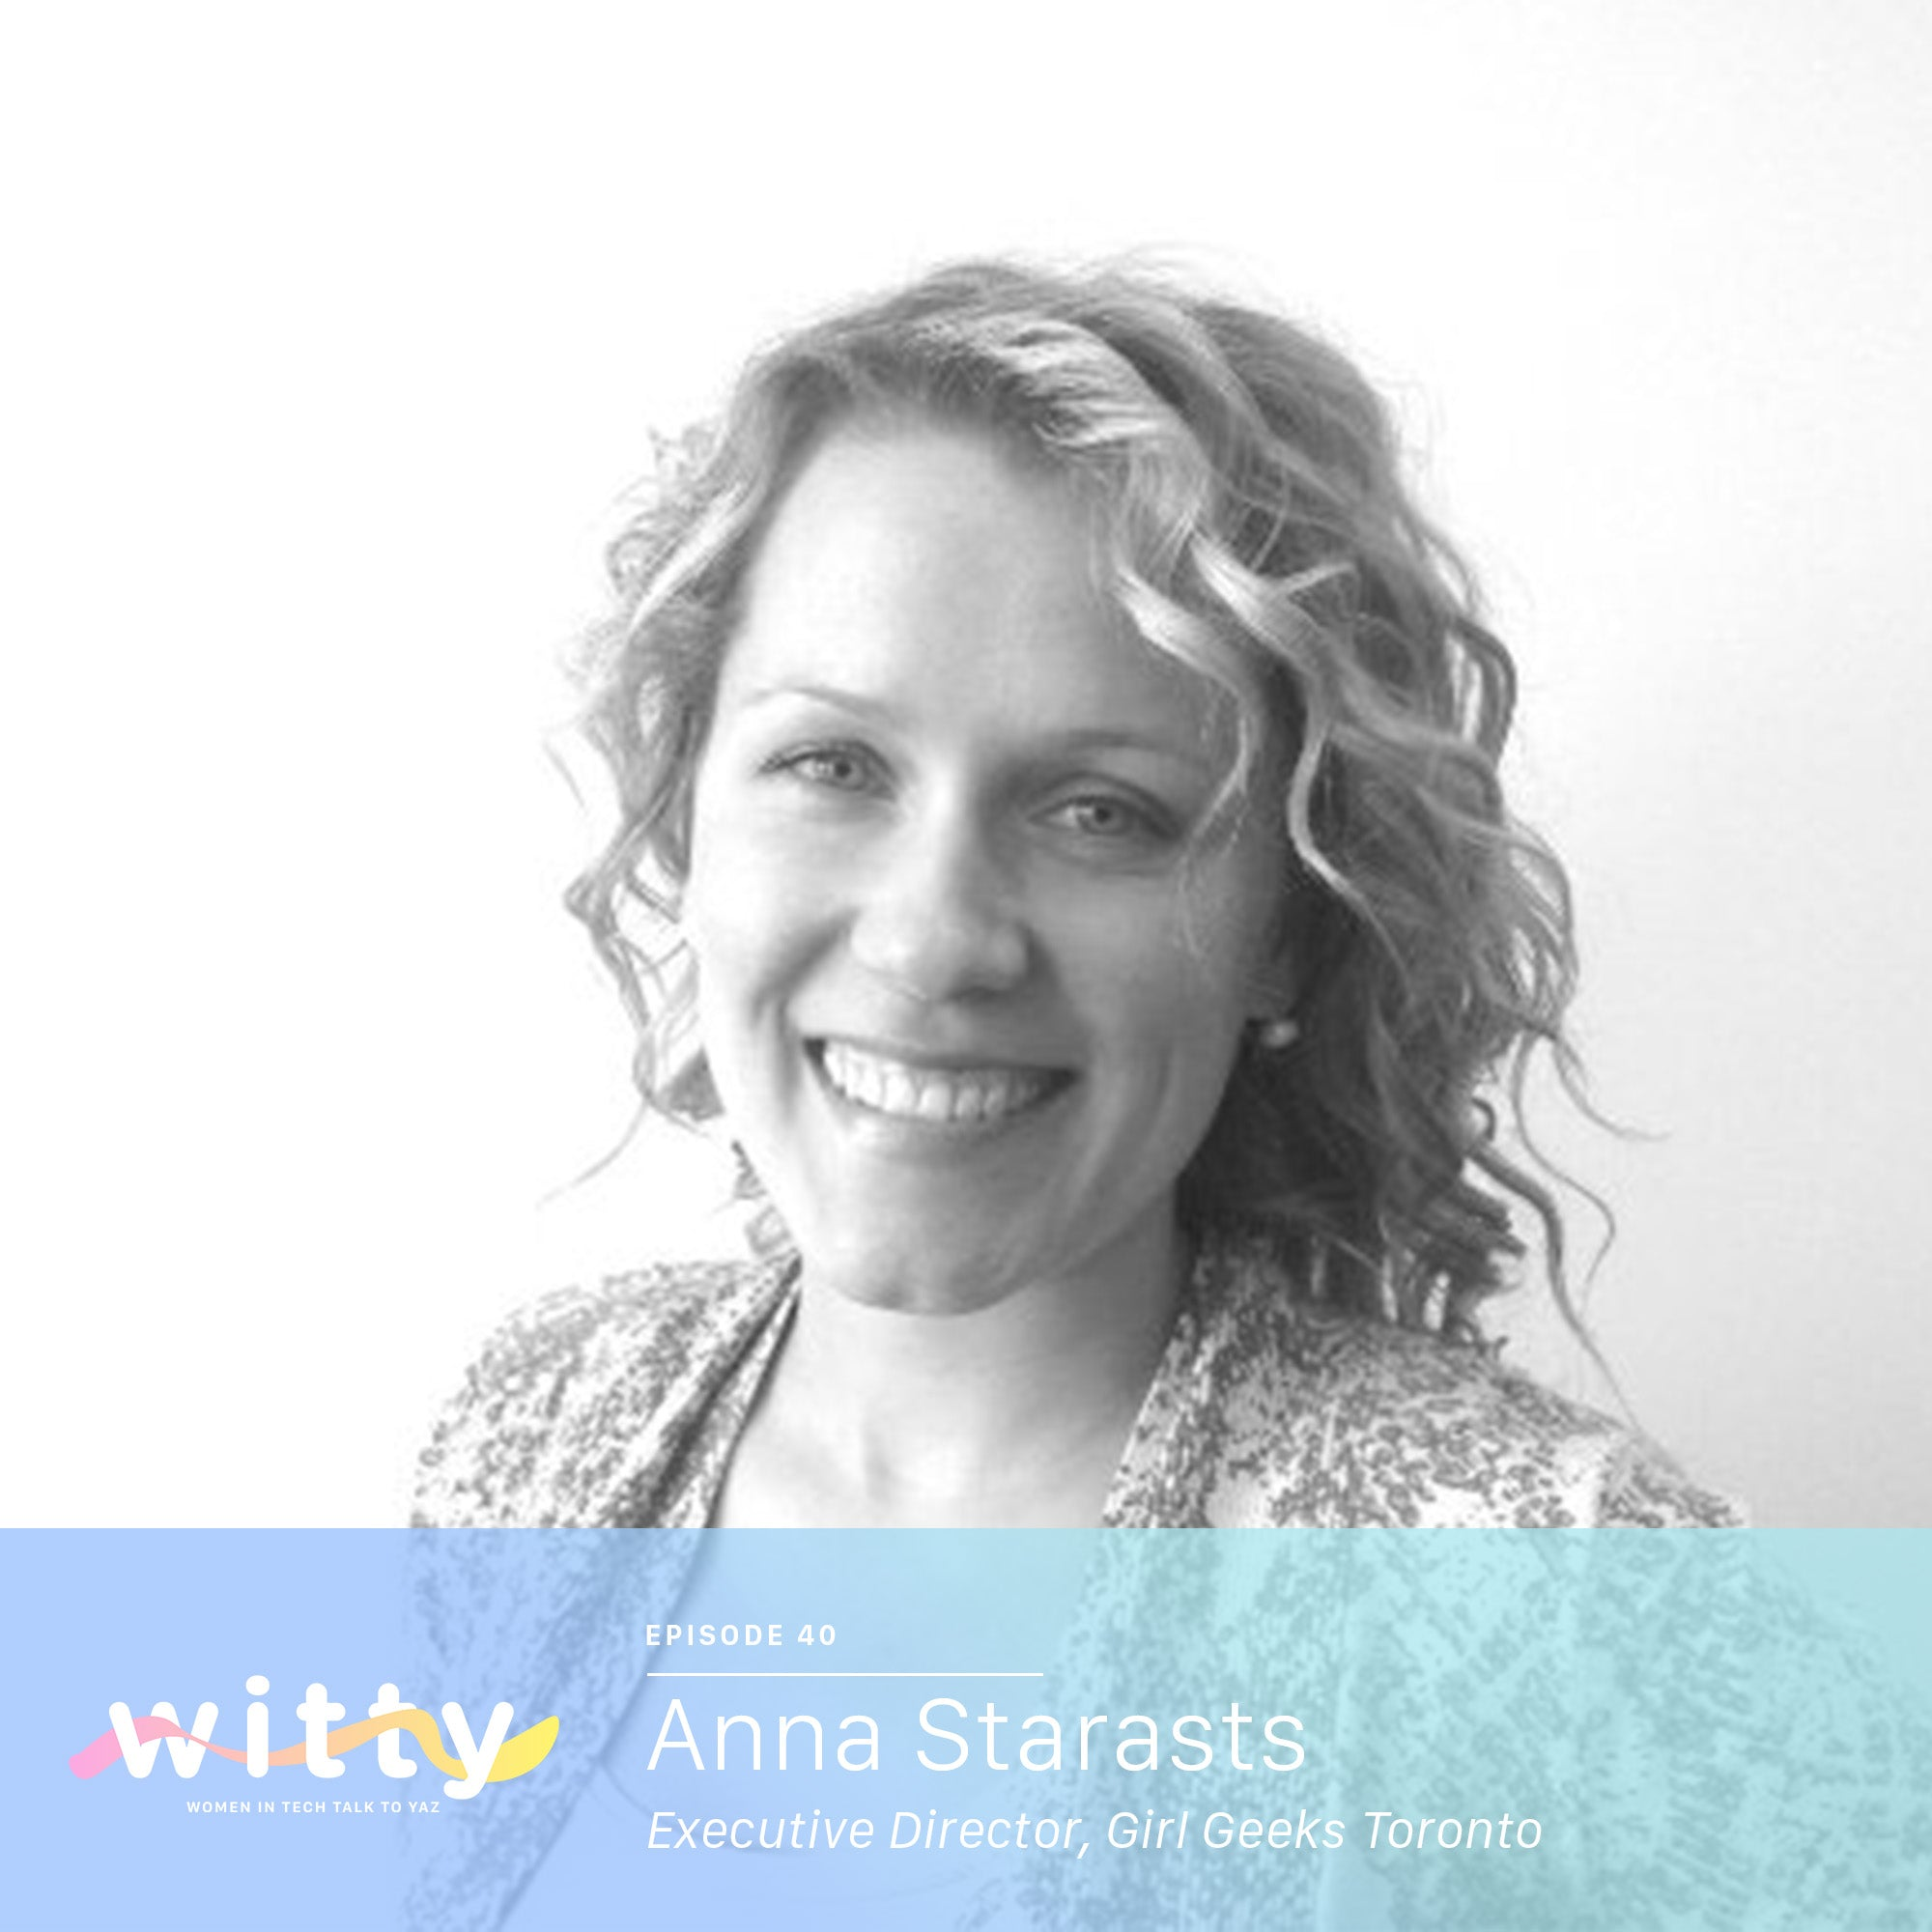 Ep. 40: The challenge of founder worship (Anna Starasts)